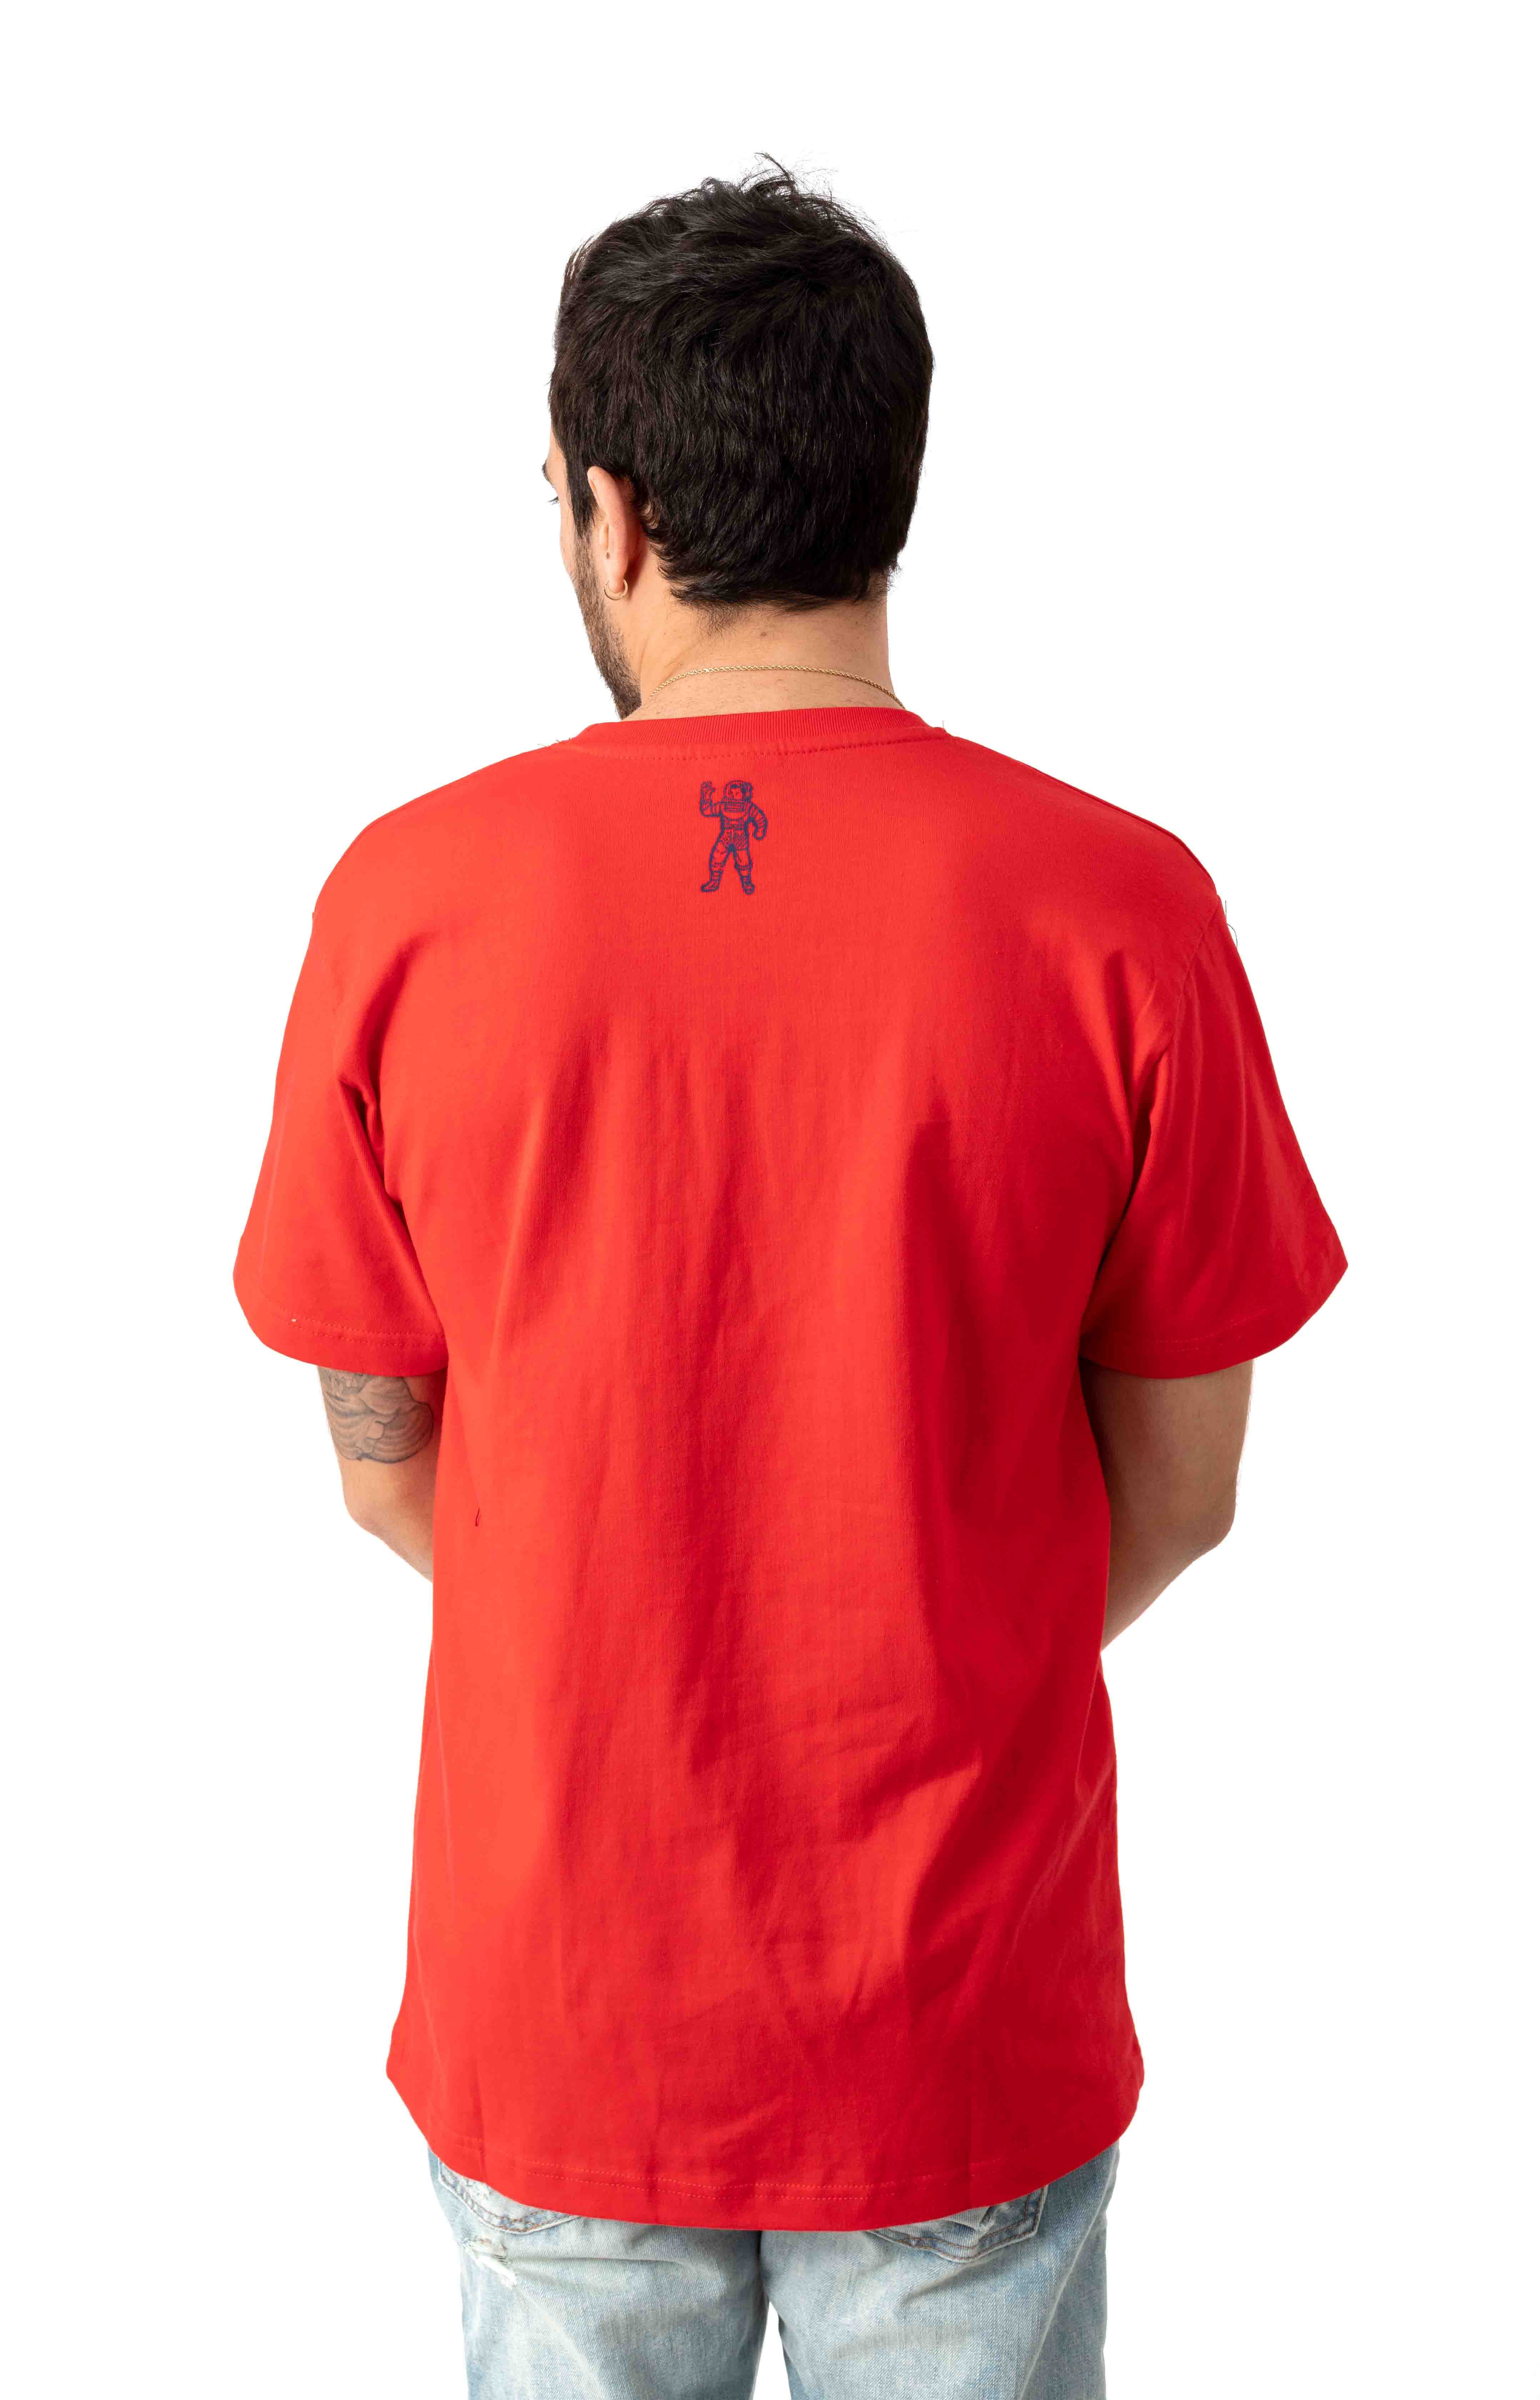 BB Recovery T-Shirt - High Risk Red 3